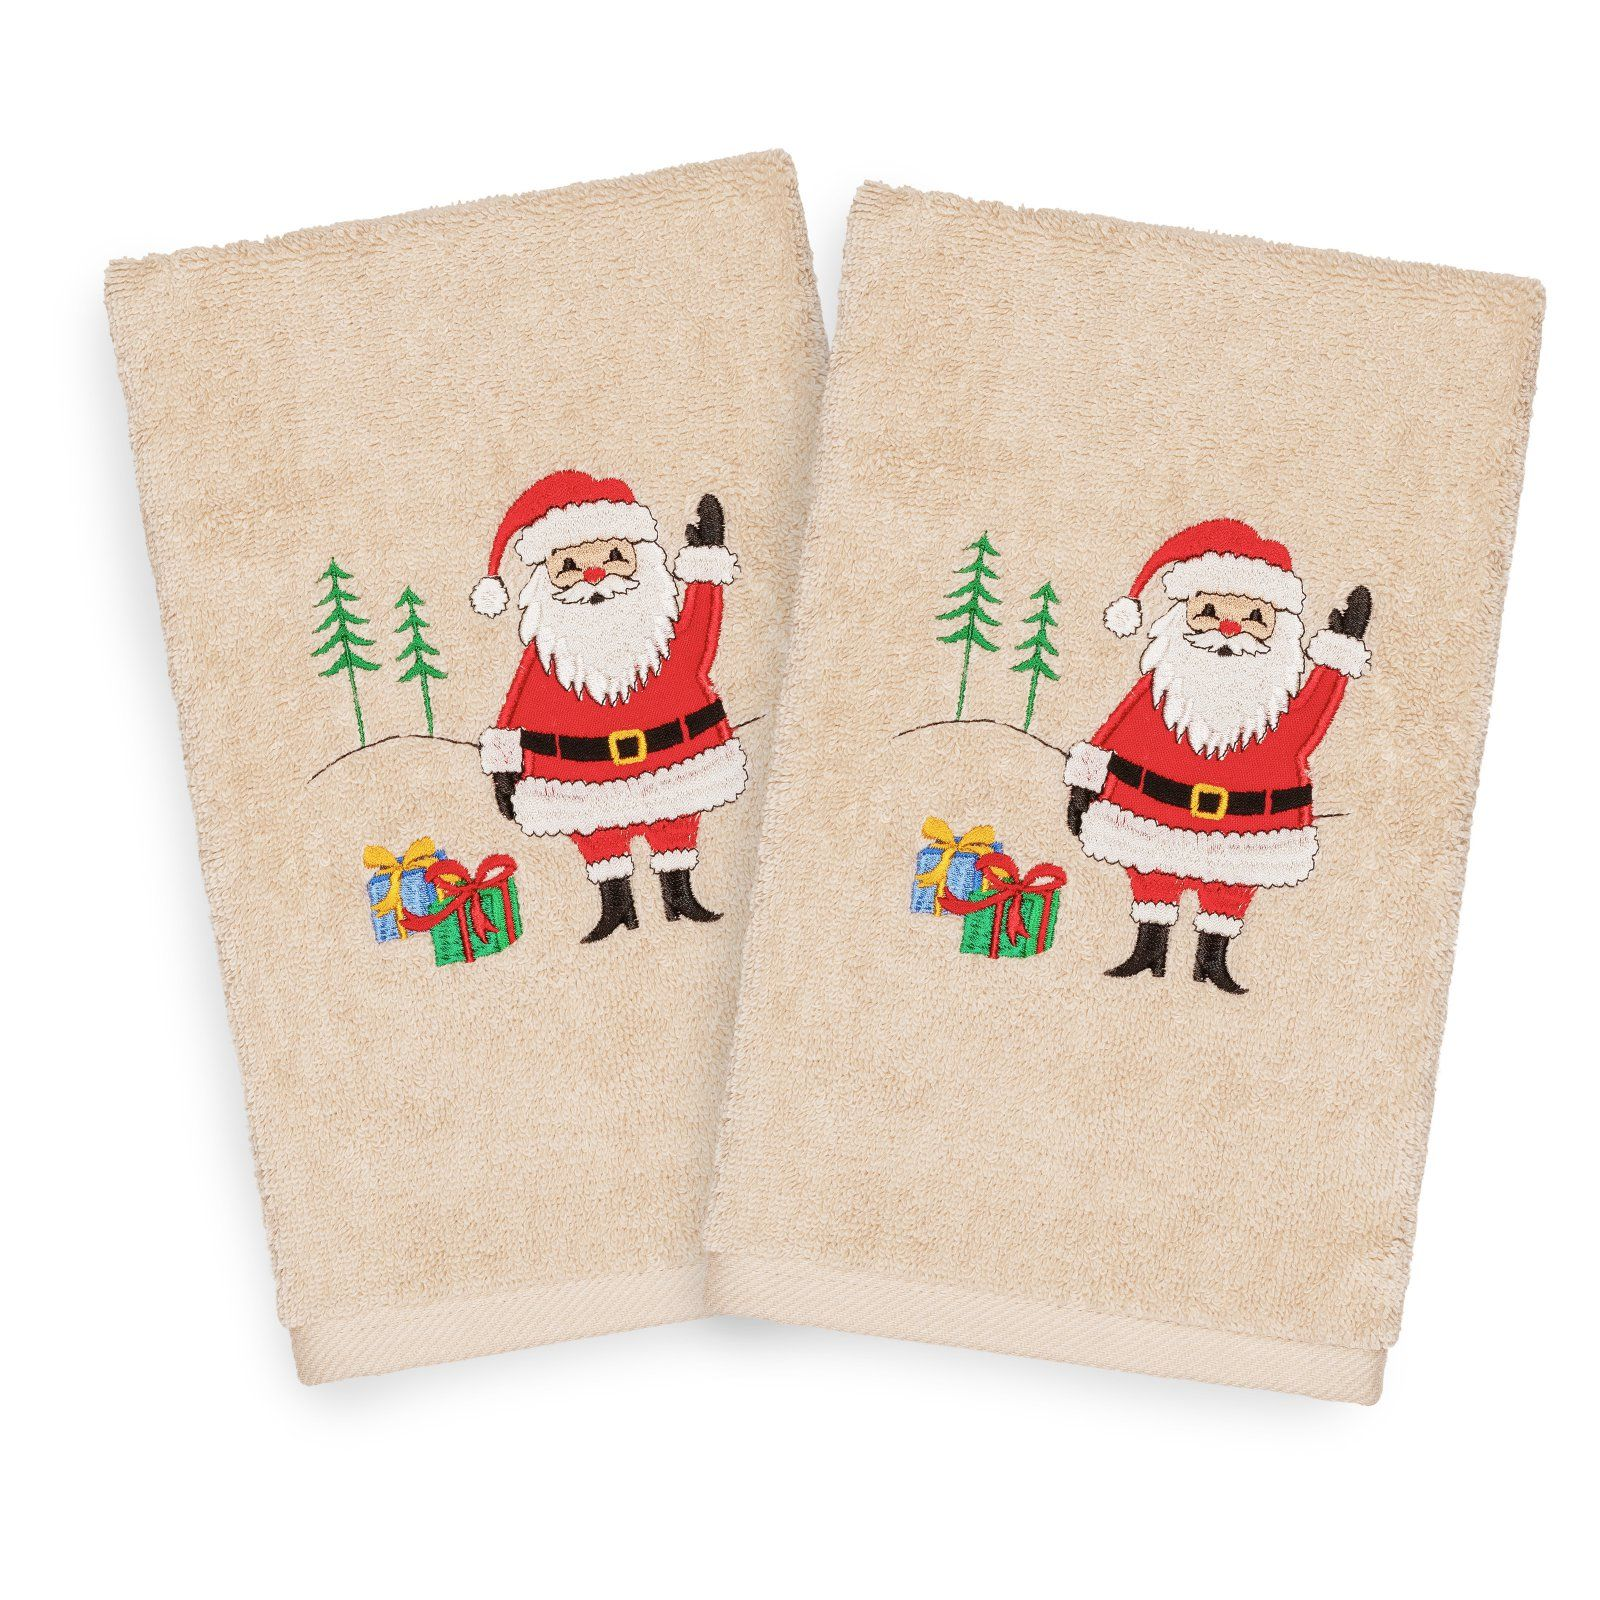 Linum Home Textiles Christmas Santa Waving Embroidered Turkish Cotton Hand Towel - Set of 2 Sand #handtowels